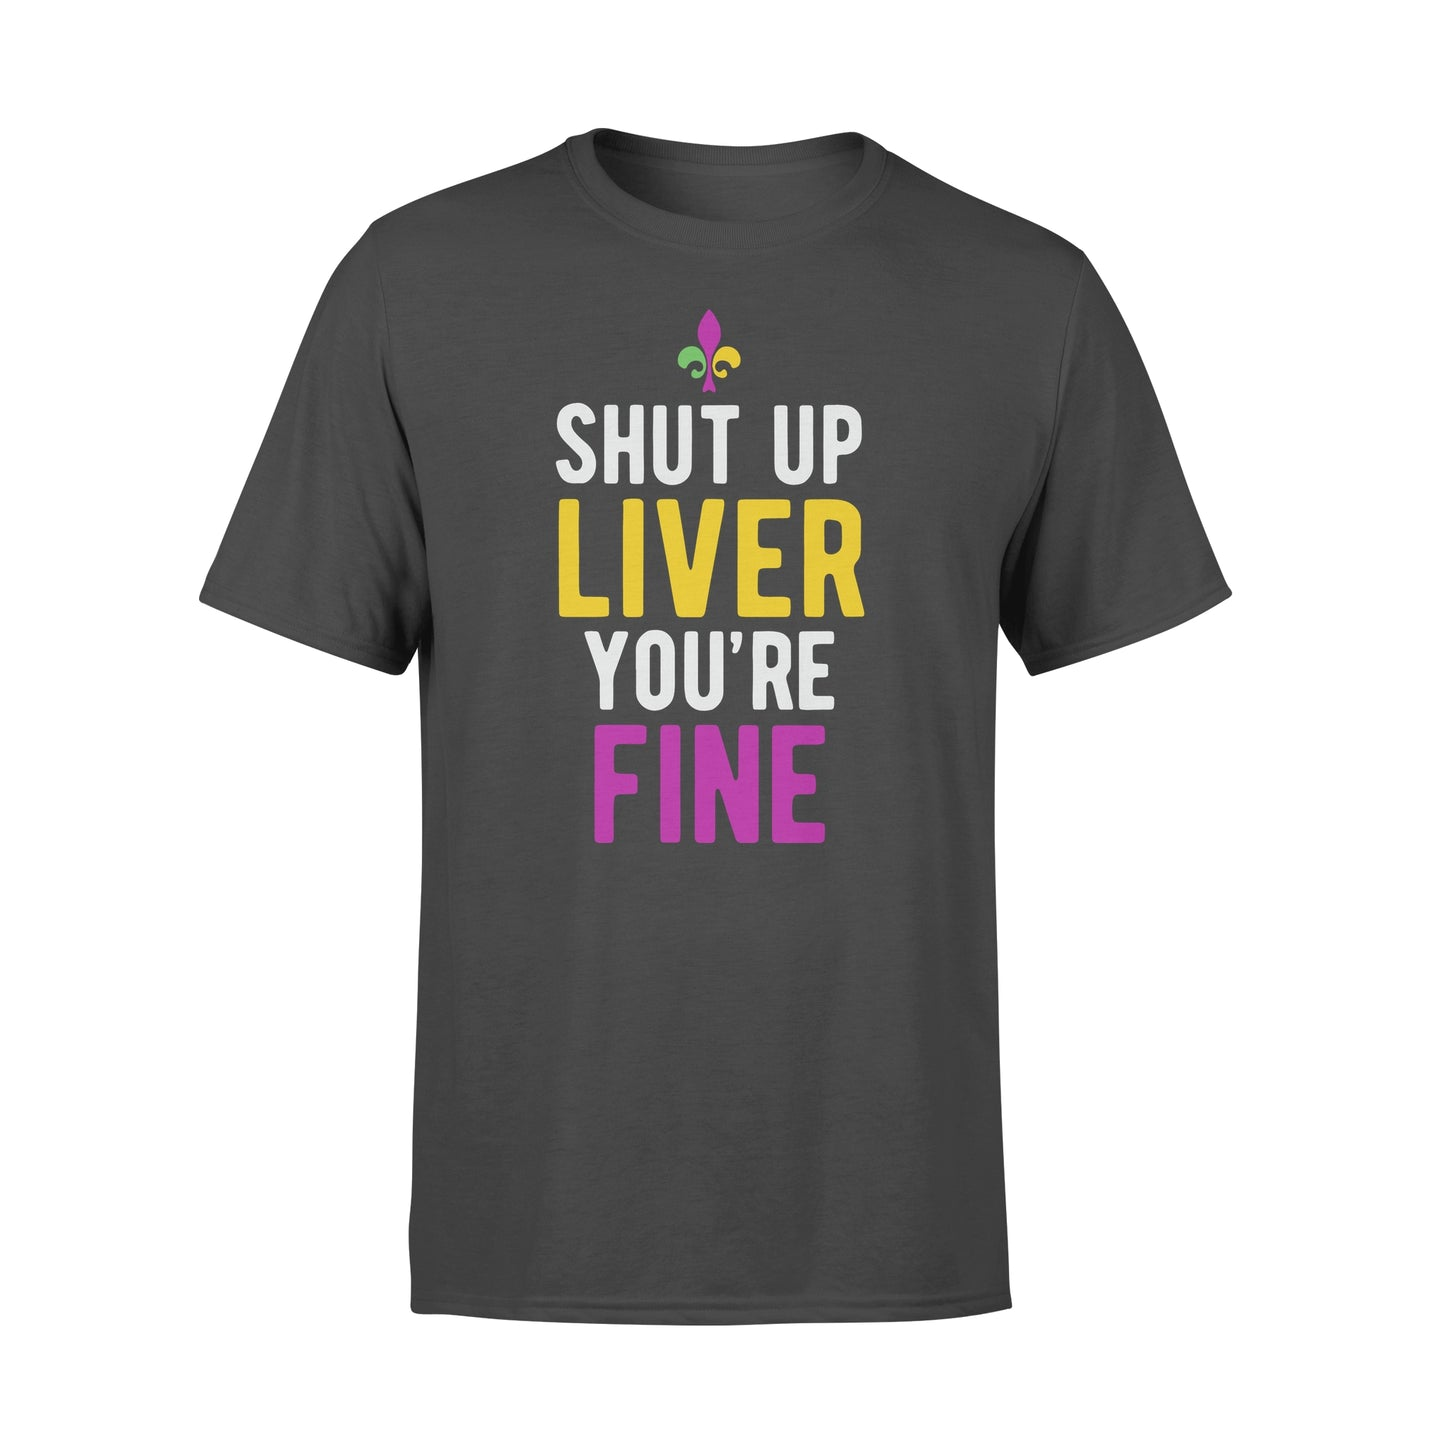 Mardi Gras Shirt Shut Up Liver You're Fine - Standard T-shirt Apparel S / Black